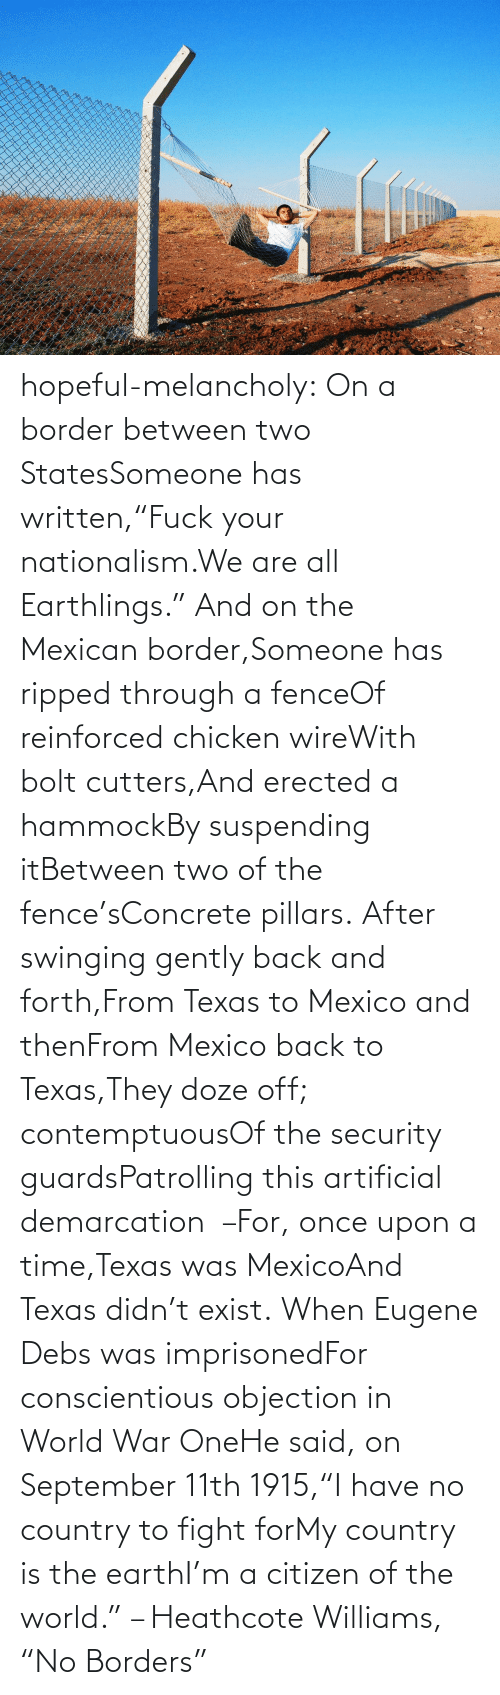 """Tumblr, Blog, and Chicken: hopeful-melancholy:  On a border between two StatesSomeone has written,""""Fuck your nationalism.We are all Earthlings."""" And on the Mexican border,Someone has ripped through a fenceOf reinforced chicken wireWith bolt cutters,And erected a hammockBy suspending itBetween two of the fence'sConcrete pillars. After swinging gently back and forth,From Texas to Mexico and thenFrom Mexico back to Texas,They doze off; contemptuousOf the security guardsPatrolling this artificial demarcation –For, once upon a time,Texas was MexicoAnd Texas didn't exist. When Eugene Debs was imprisonedFor conscientious objection in World War OneHe said, on September 11th 1915,""""I have no country to fight forMy country is the earthI'm a citizen of the world."""" – Heathcote Williams, """"No Borders"""""""